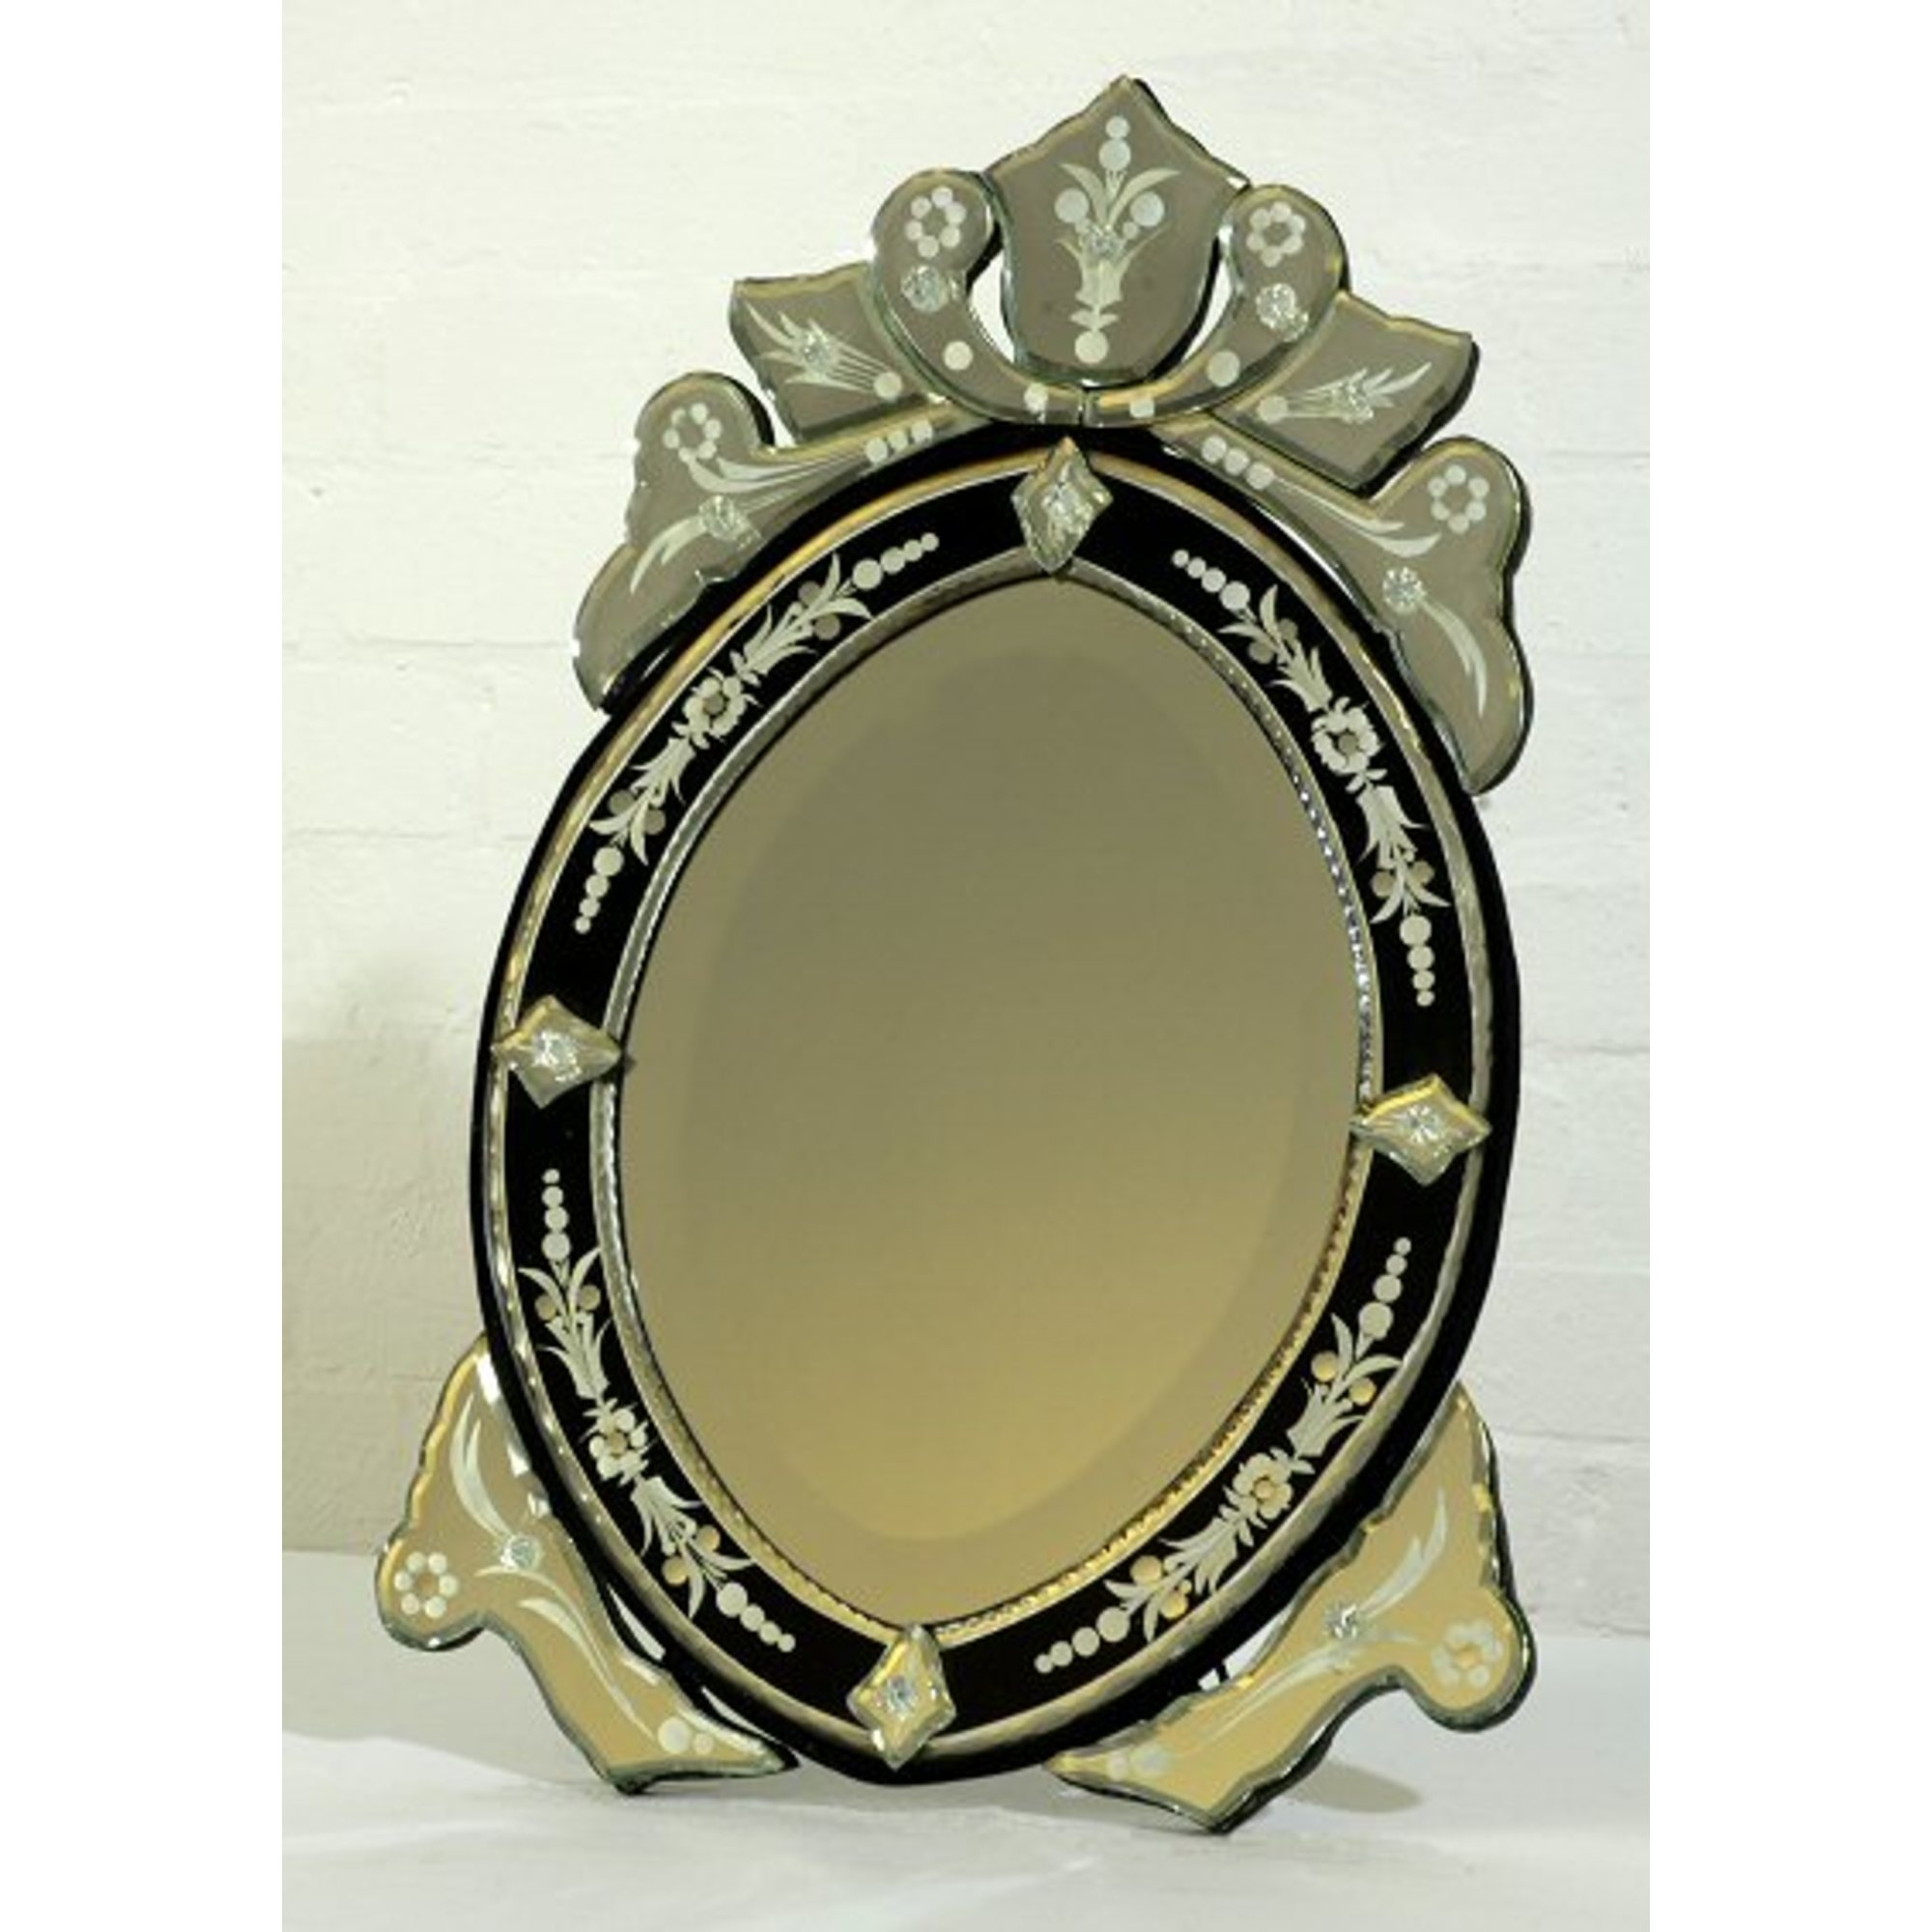 Venetian Oval Black & Clear Etched Decorative Table or Wall Mirror